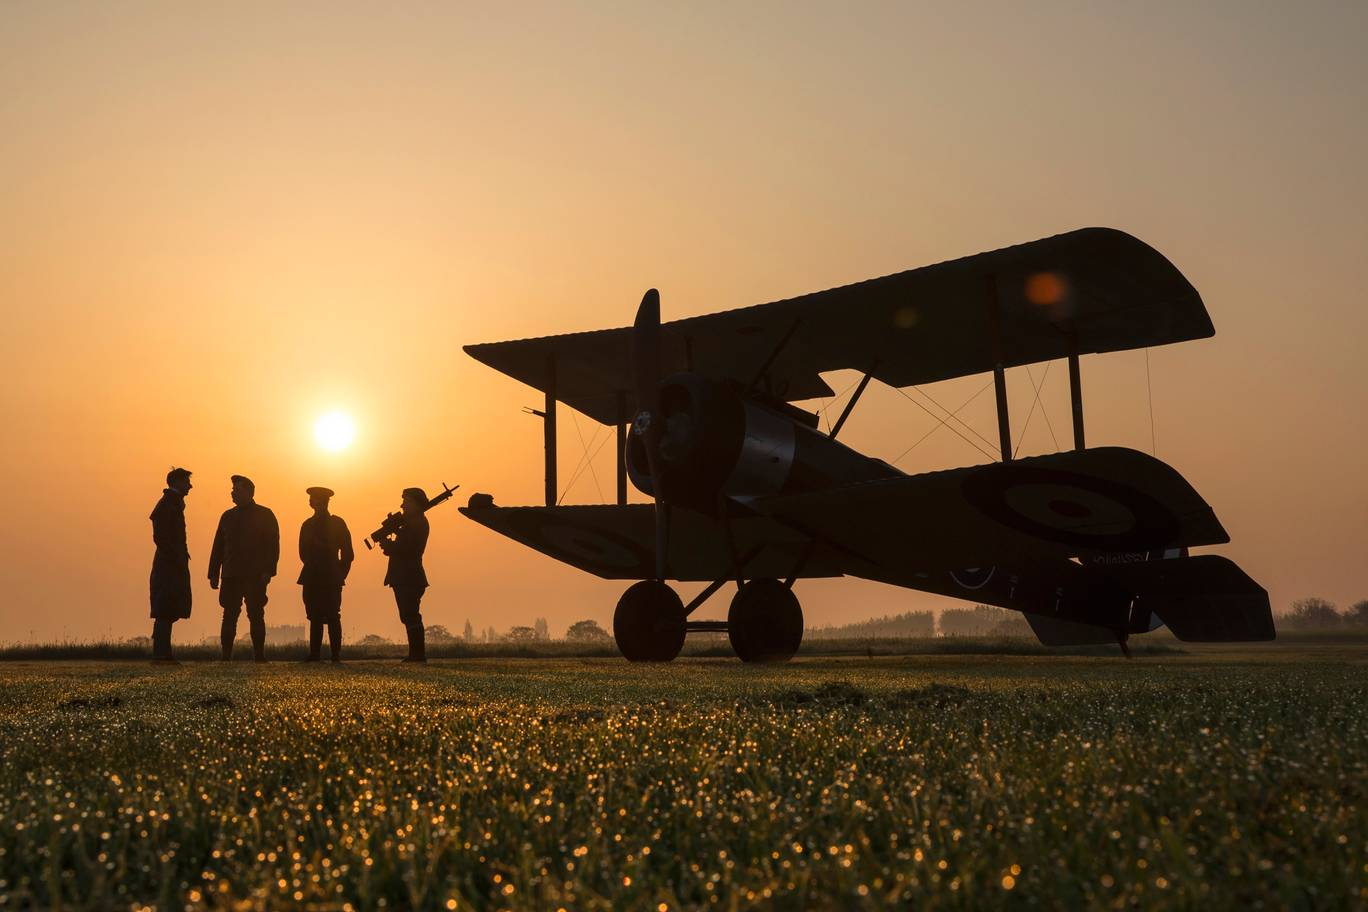 RAF Photographer of the Year: 2018 Photographic Competition